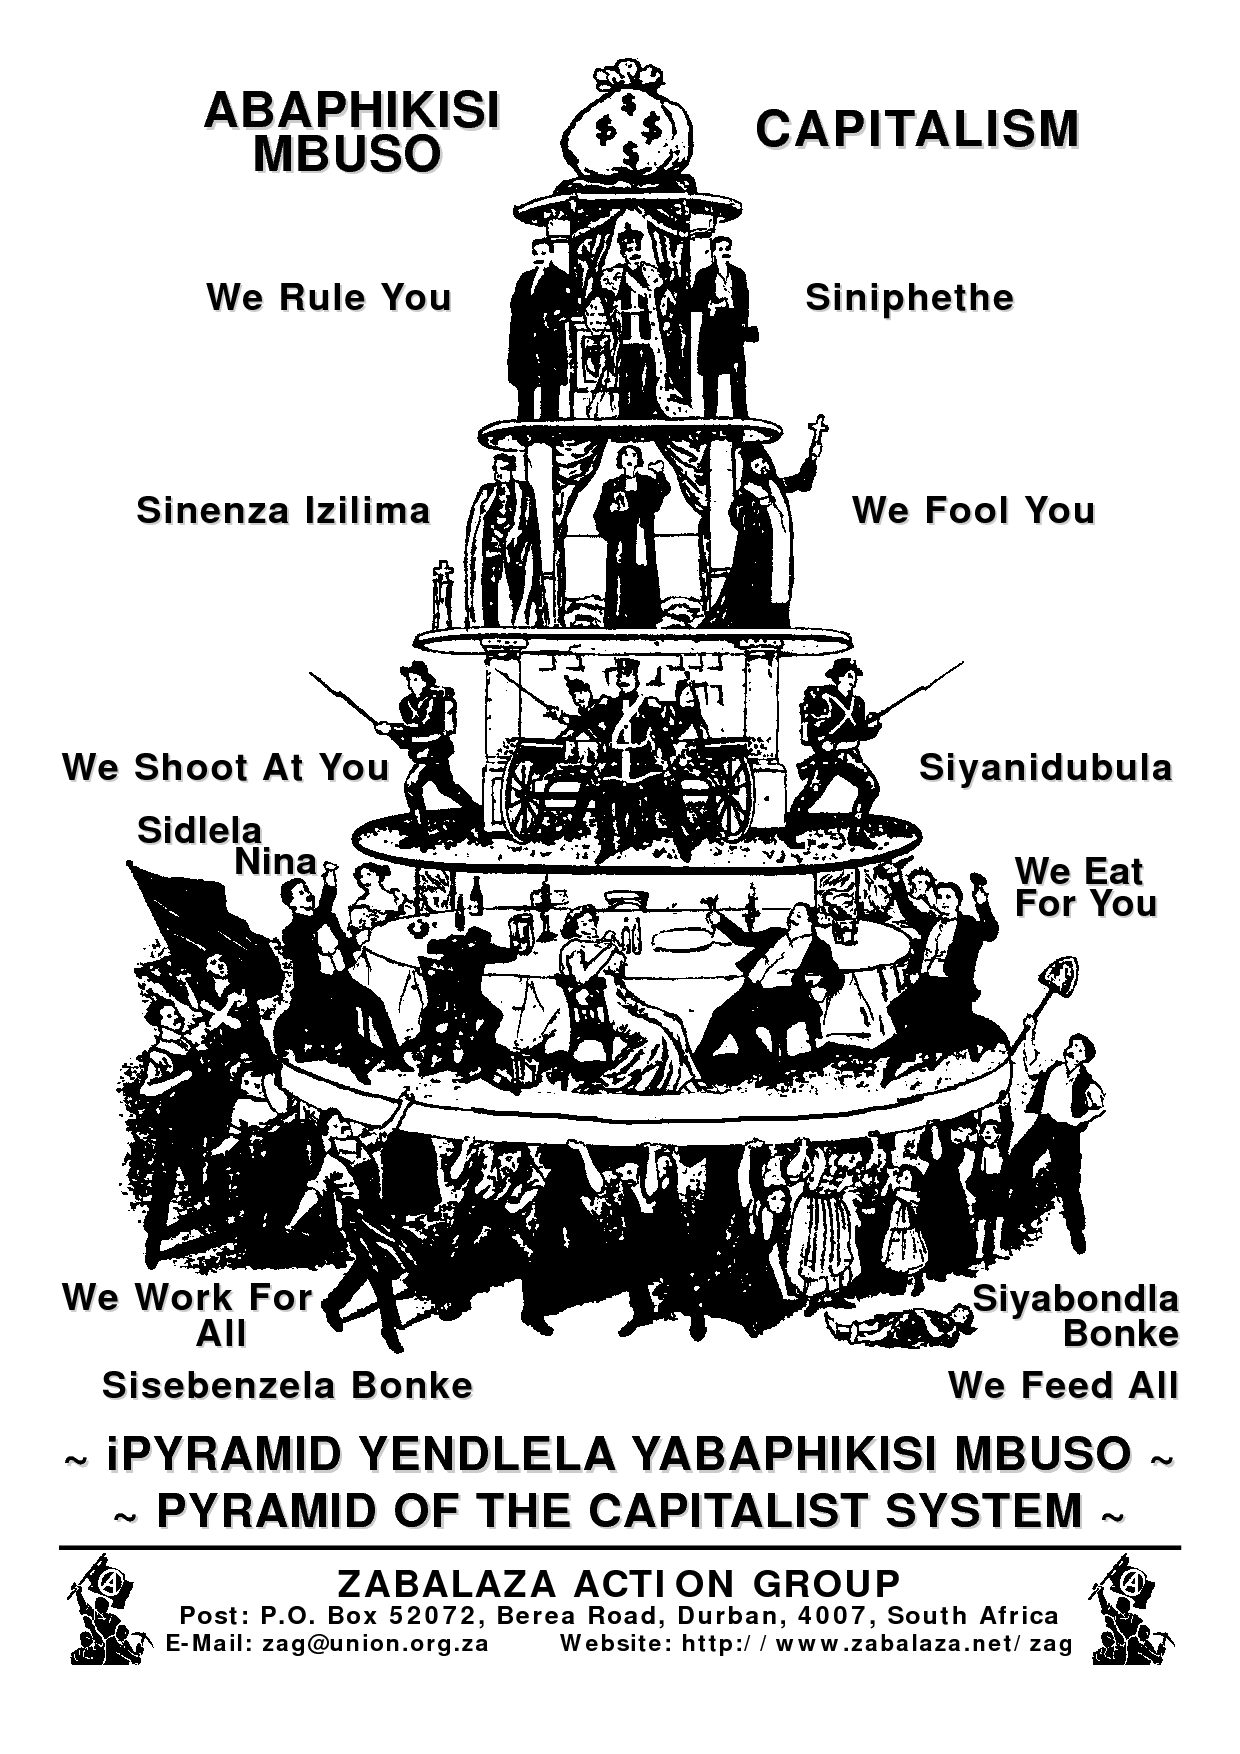 Poster Pyramid Of The Capitalist System Abaphikisi